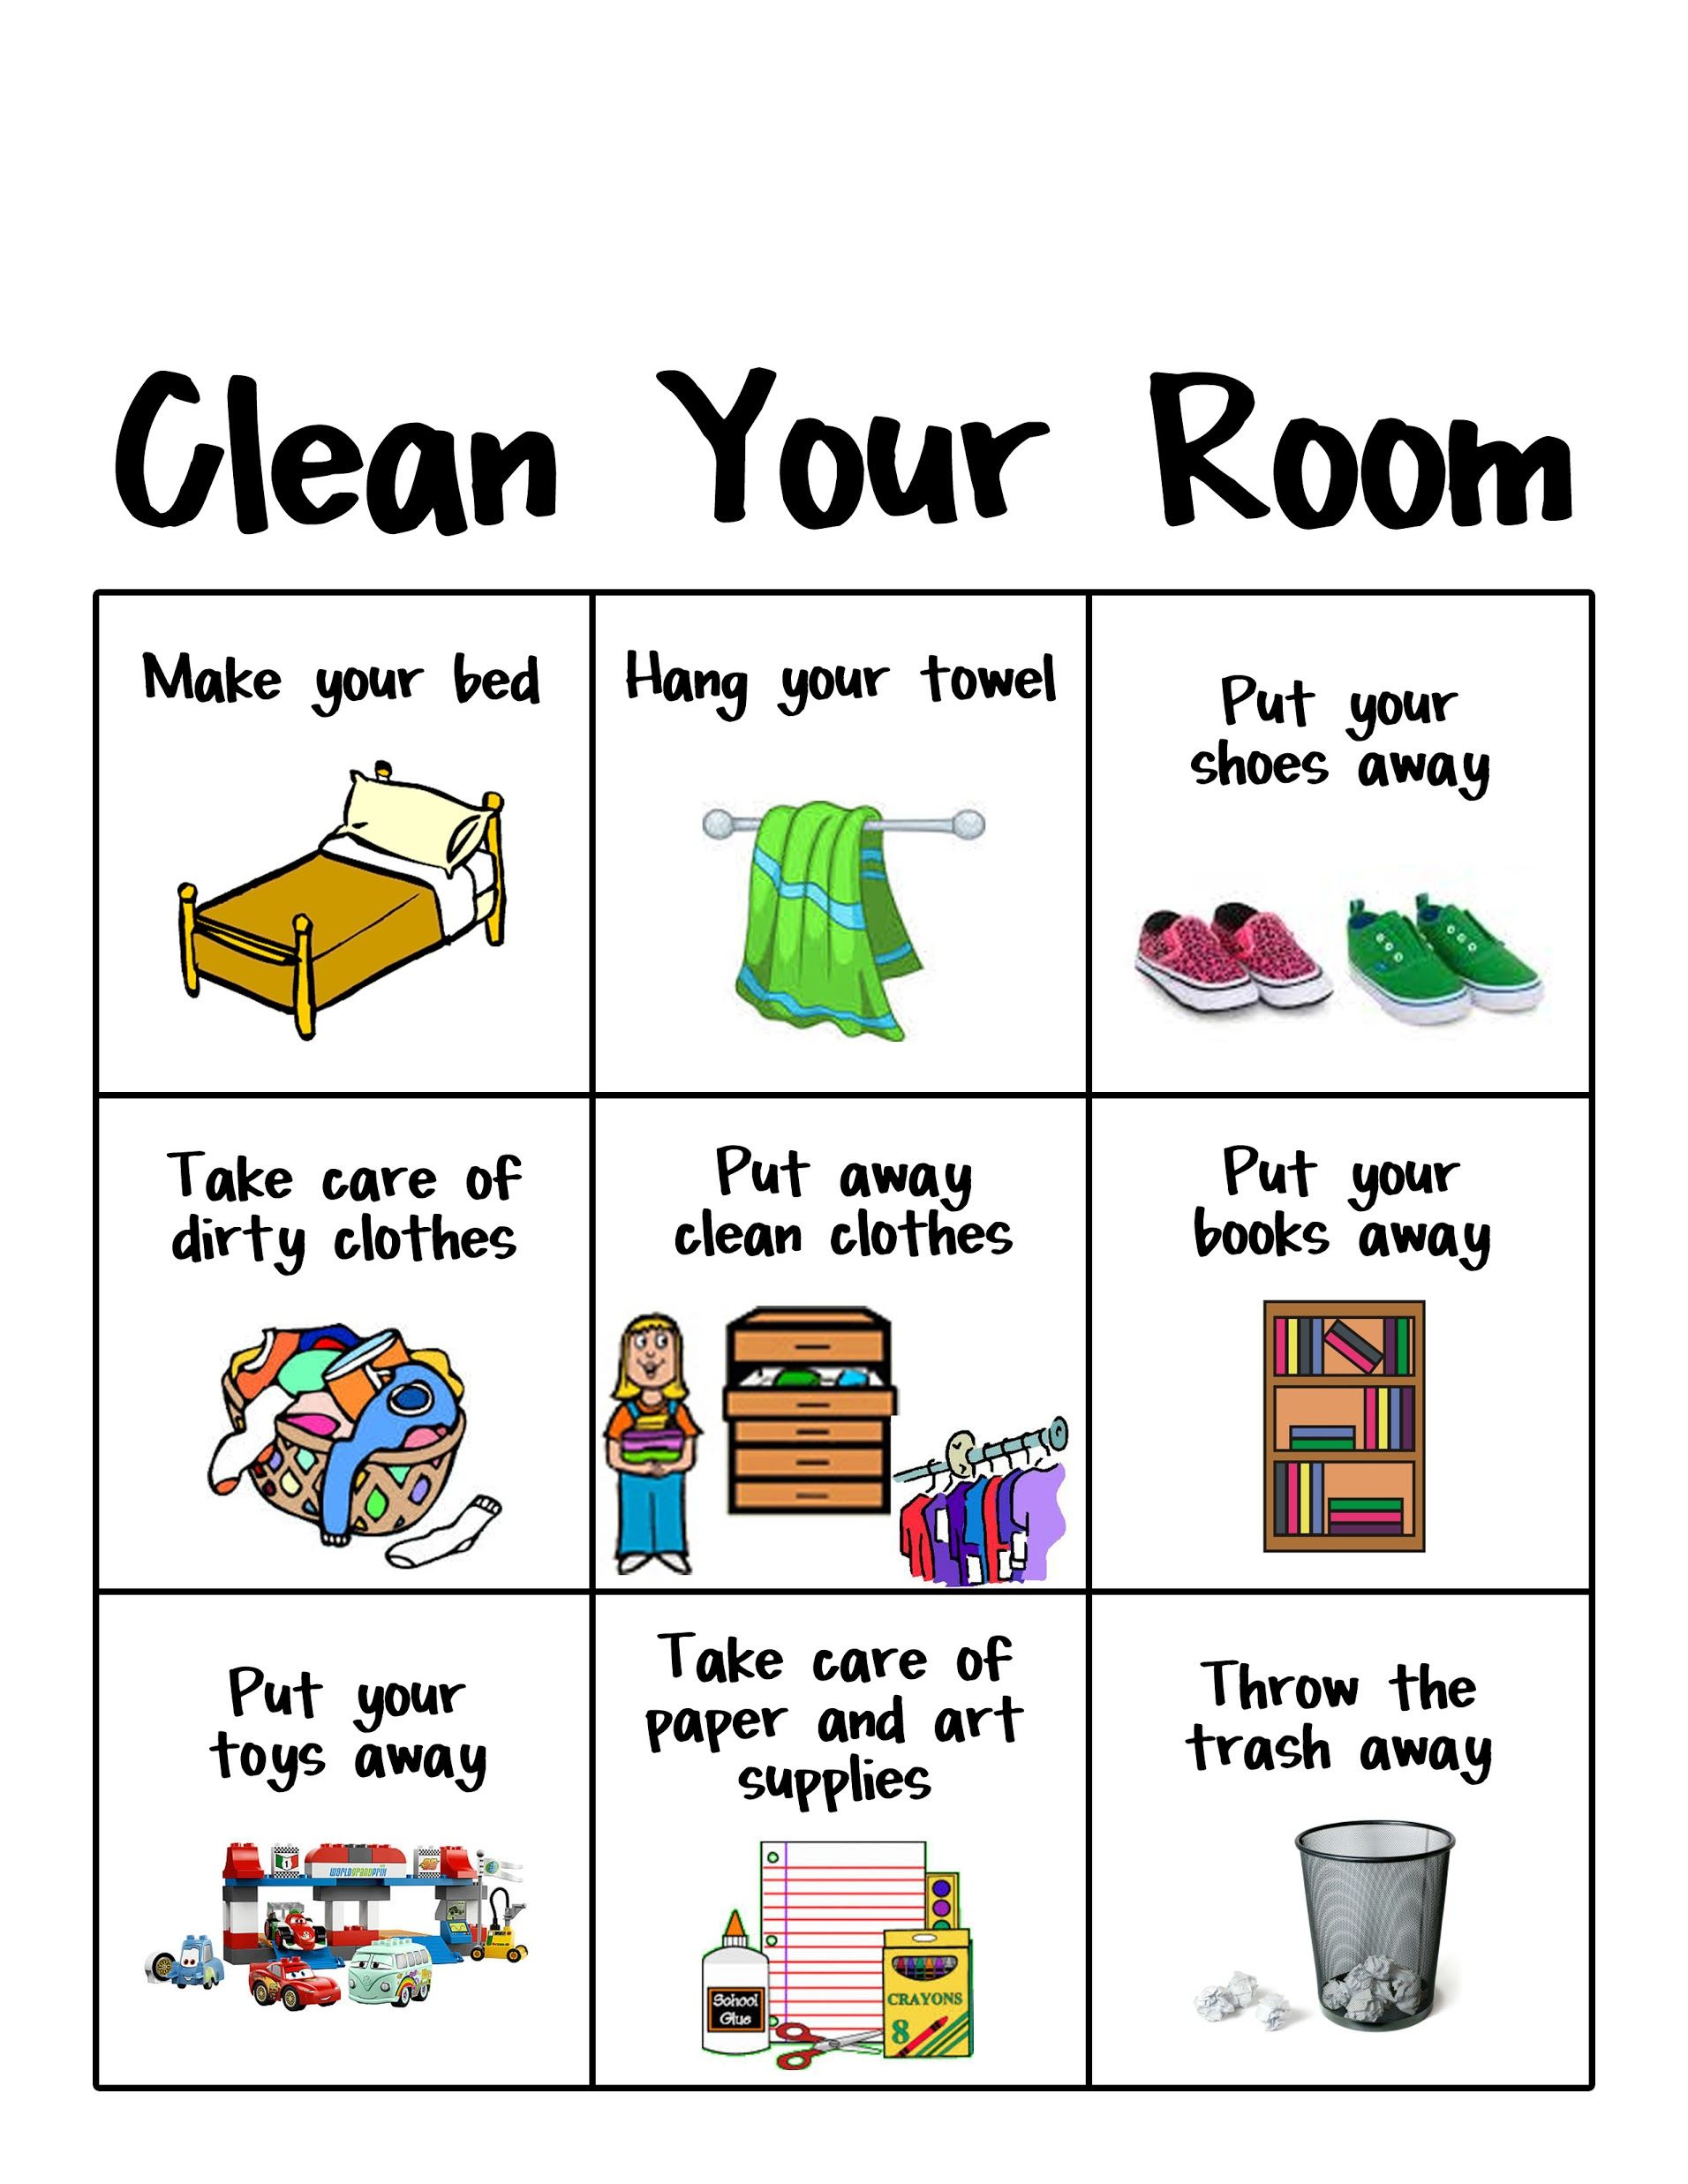 Awesome clipart cleaning. Displaying clean your room